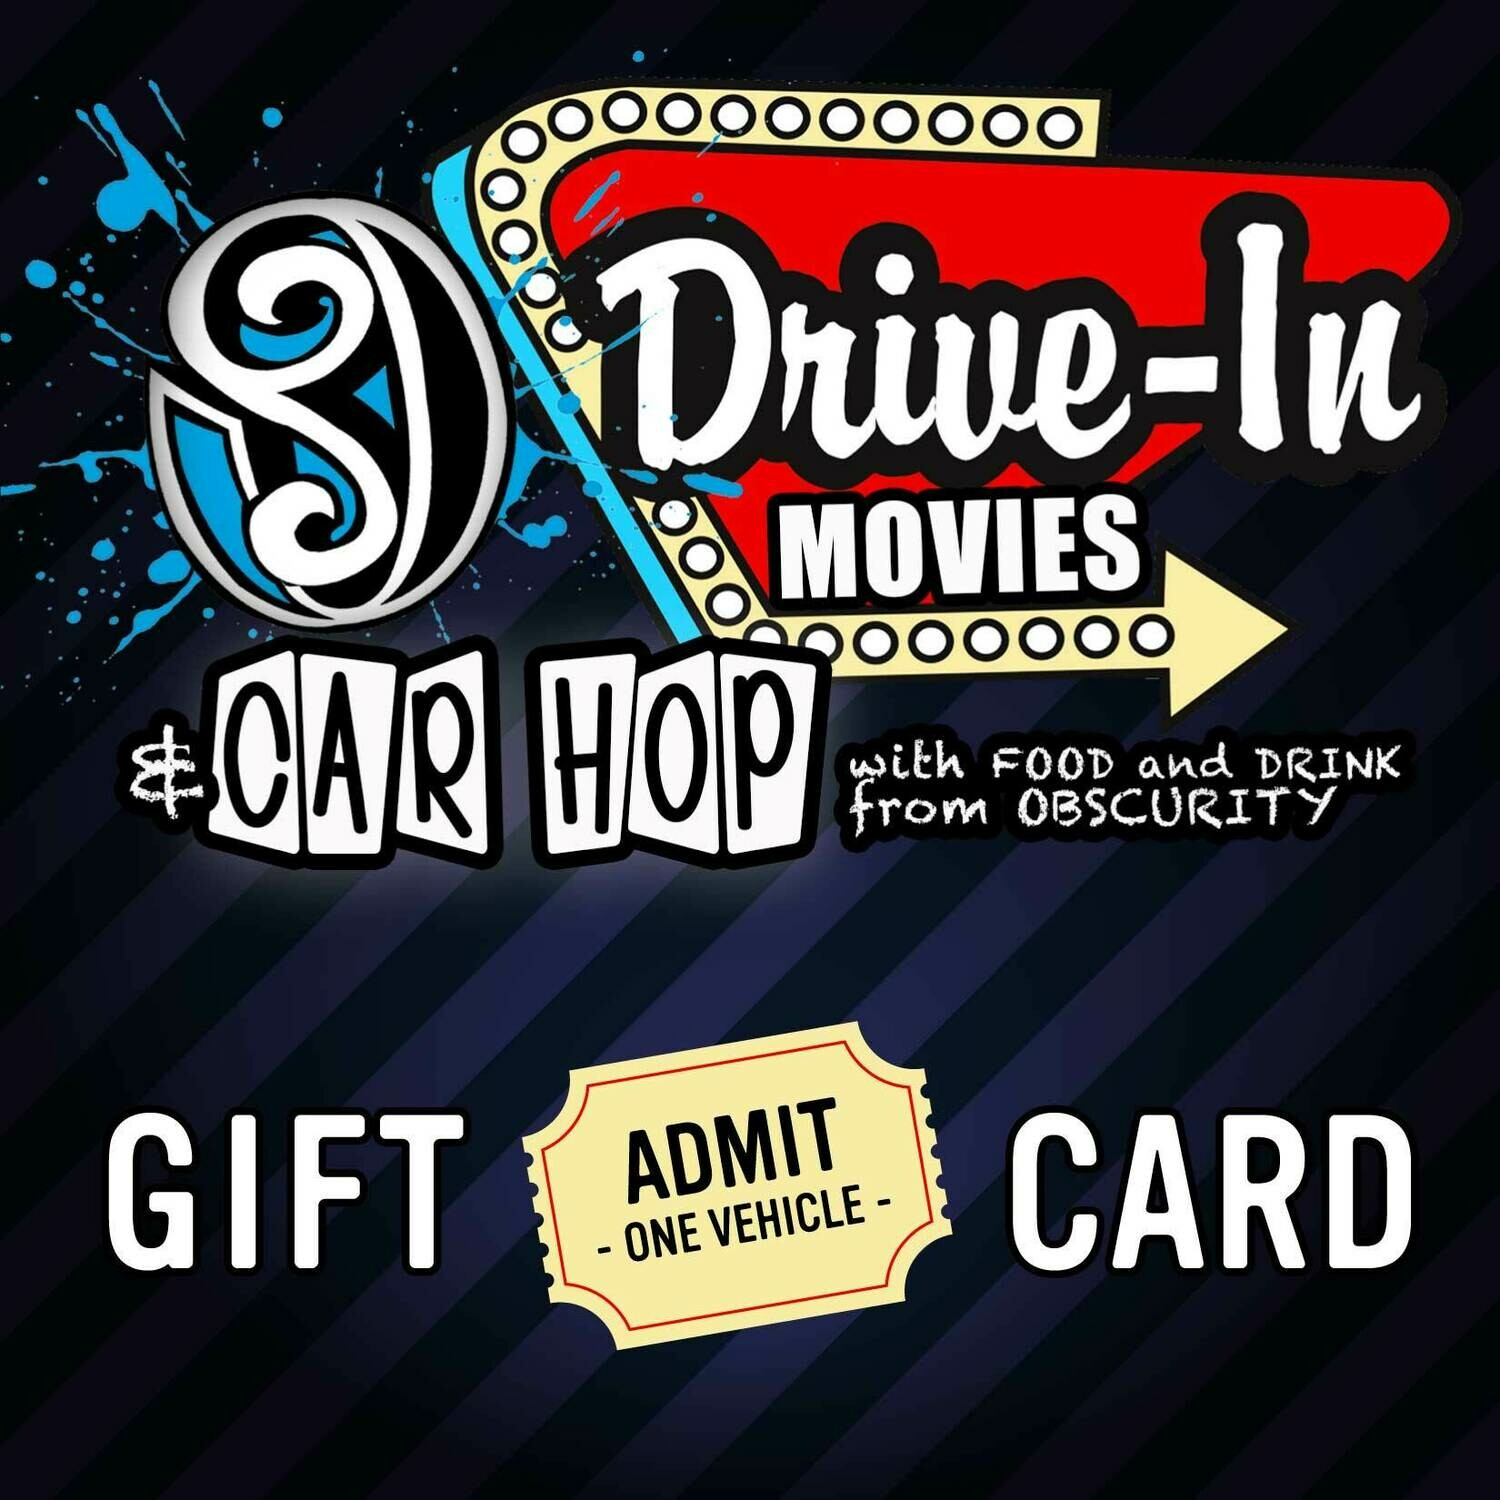 Drive-In Movie (Gift)  - Admit One Vehicle